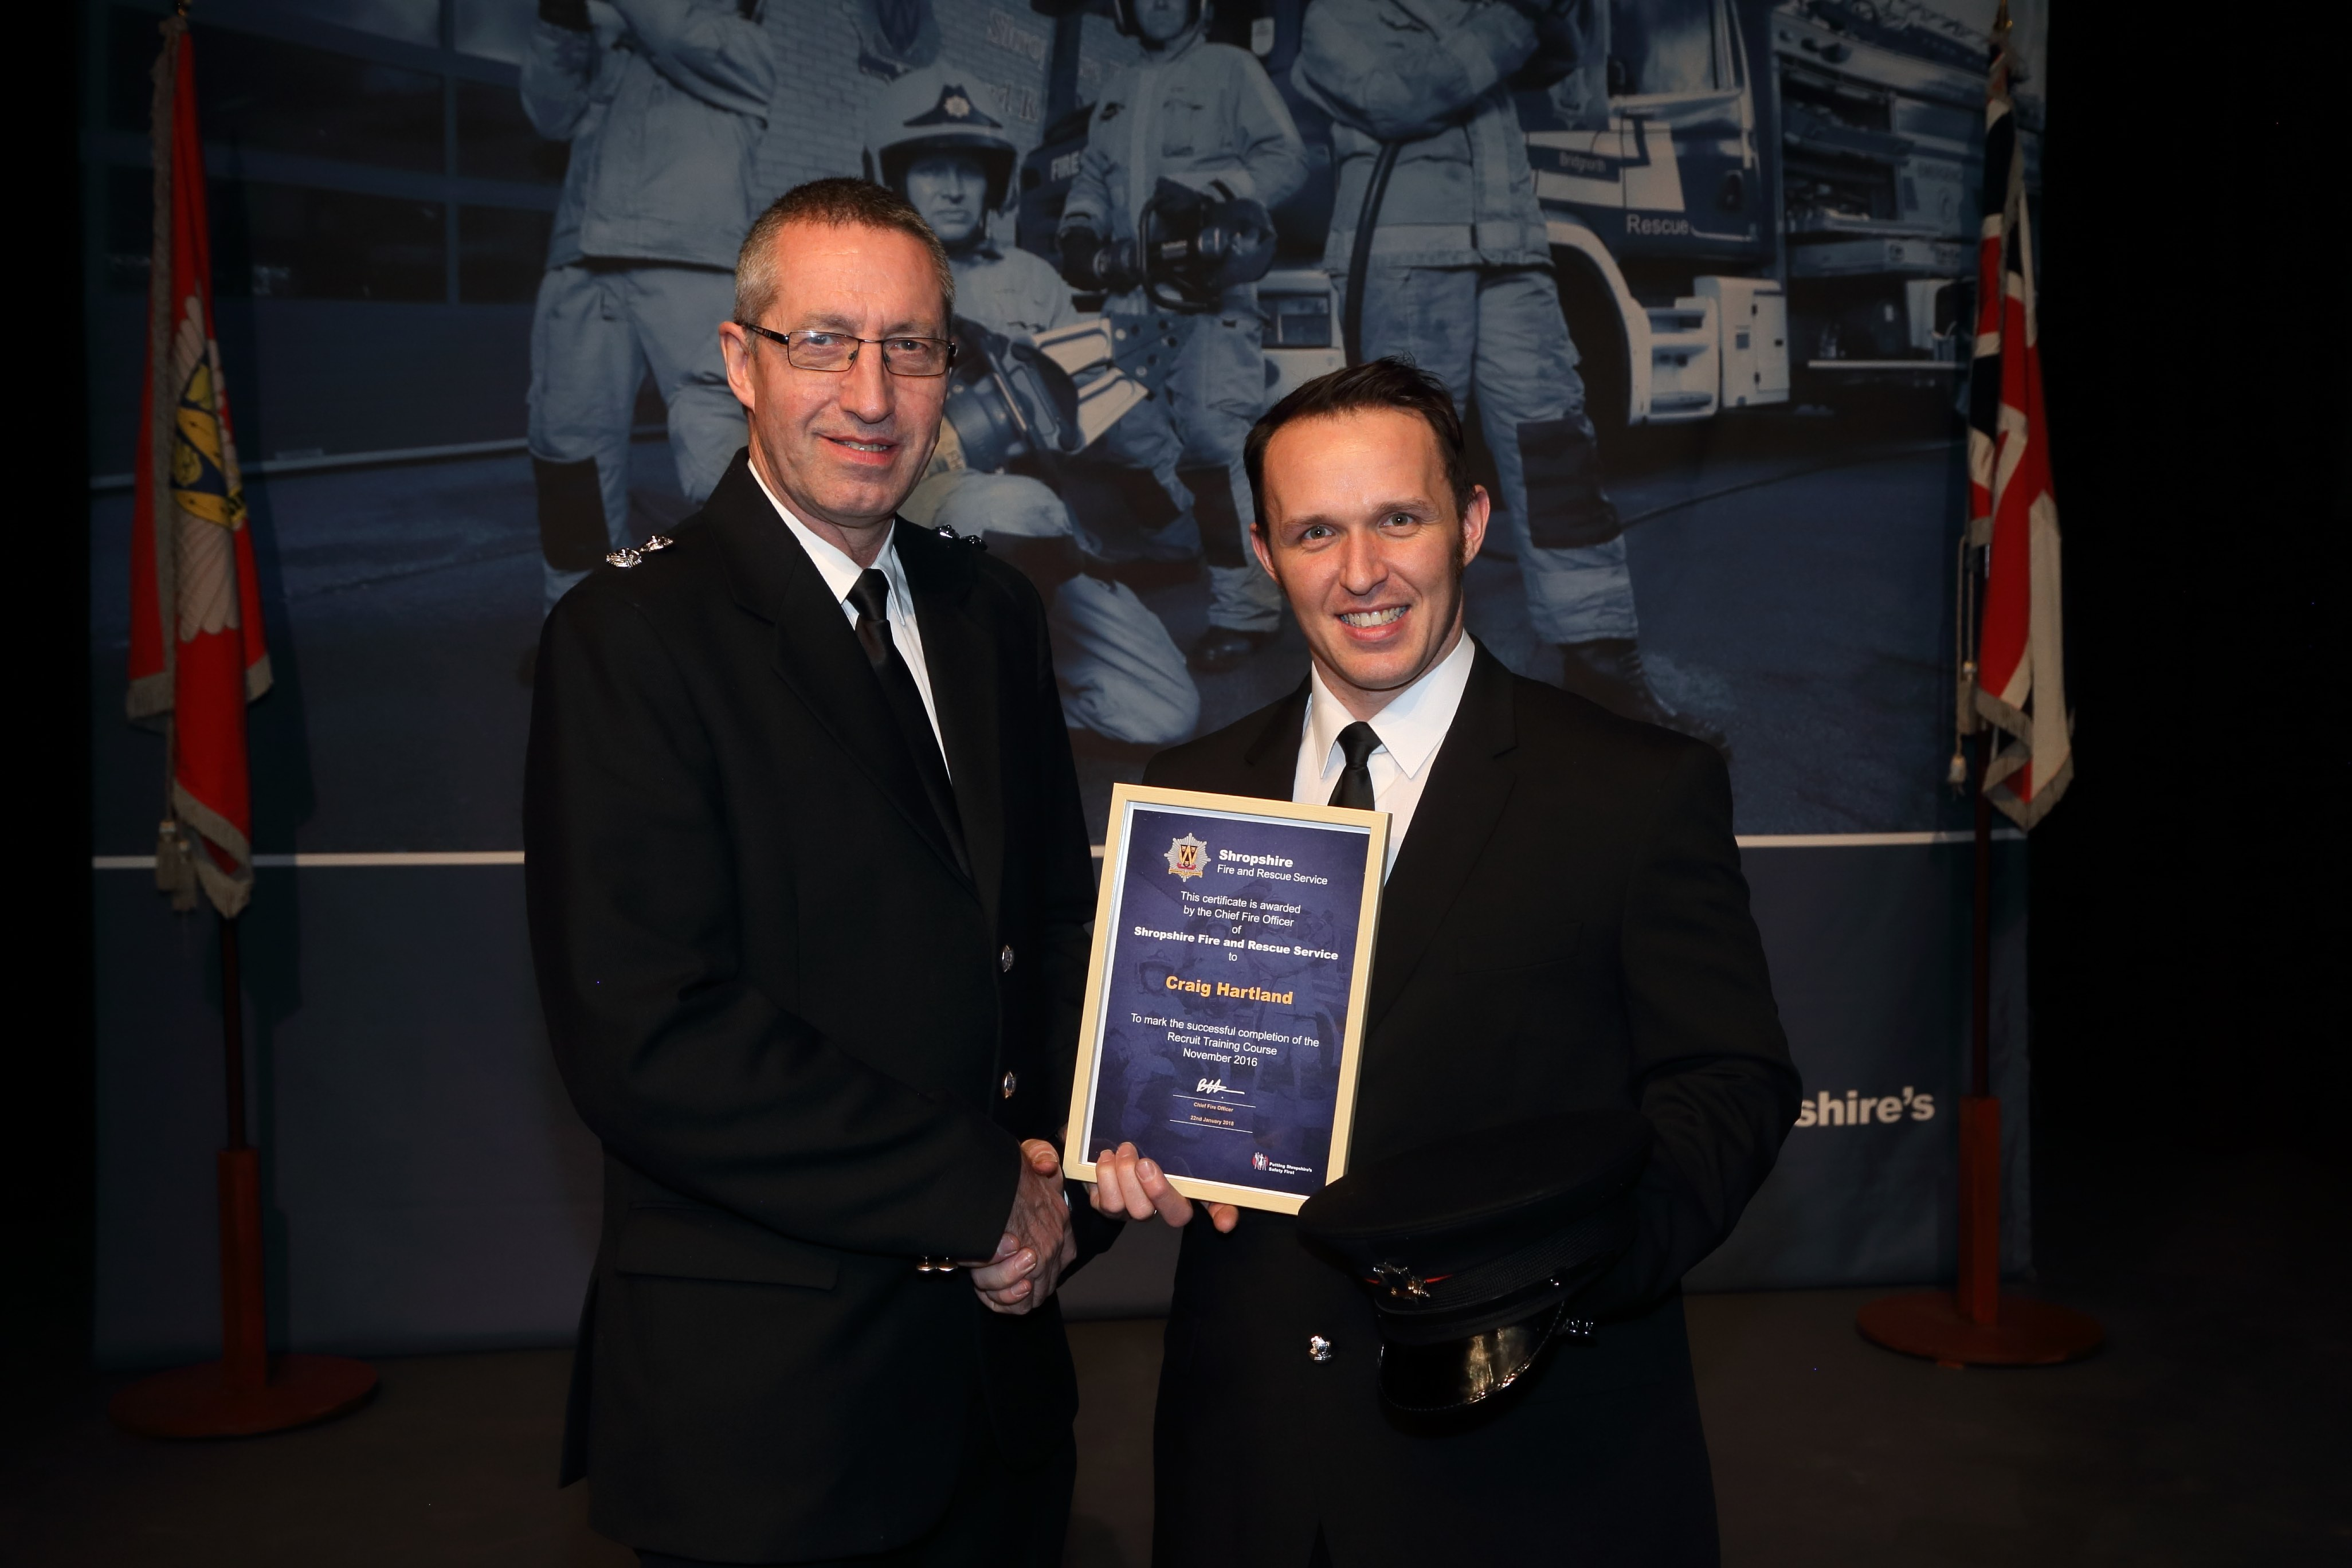 Aldi supermarket stock assistant Craig Hartland receives his certificate from Newport Watch Manager Charlie Cartwright.(left)